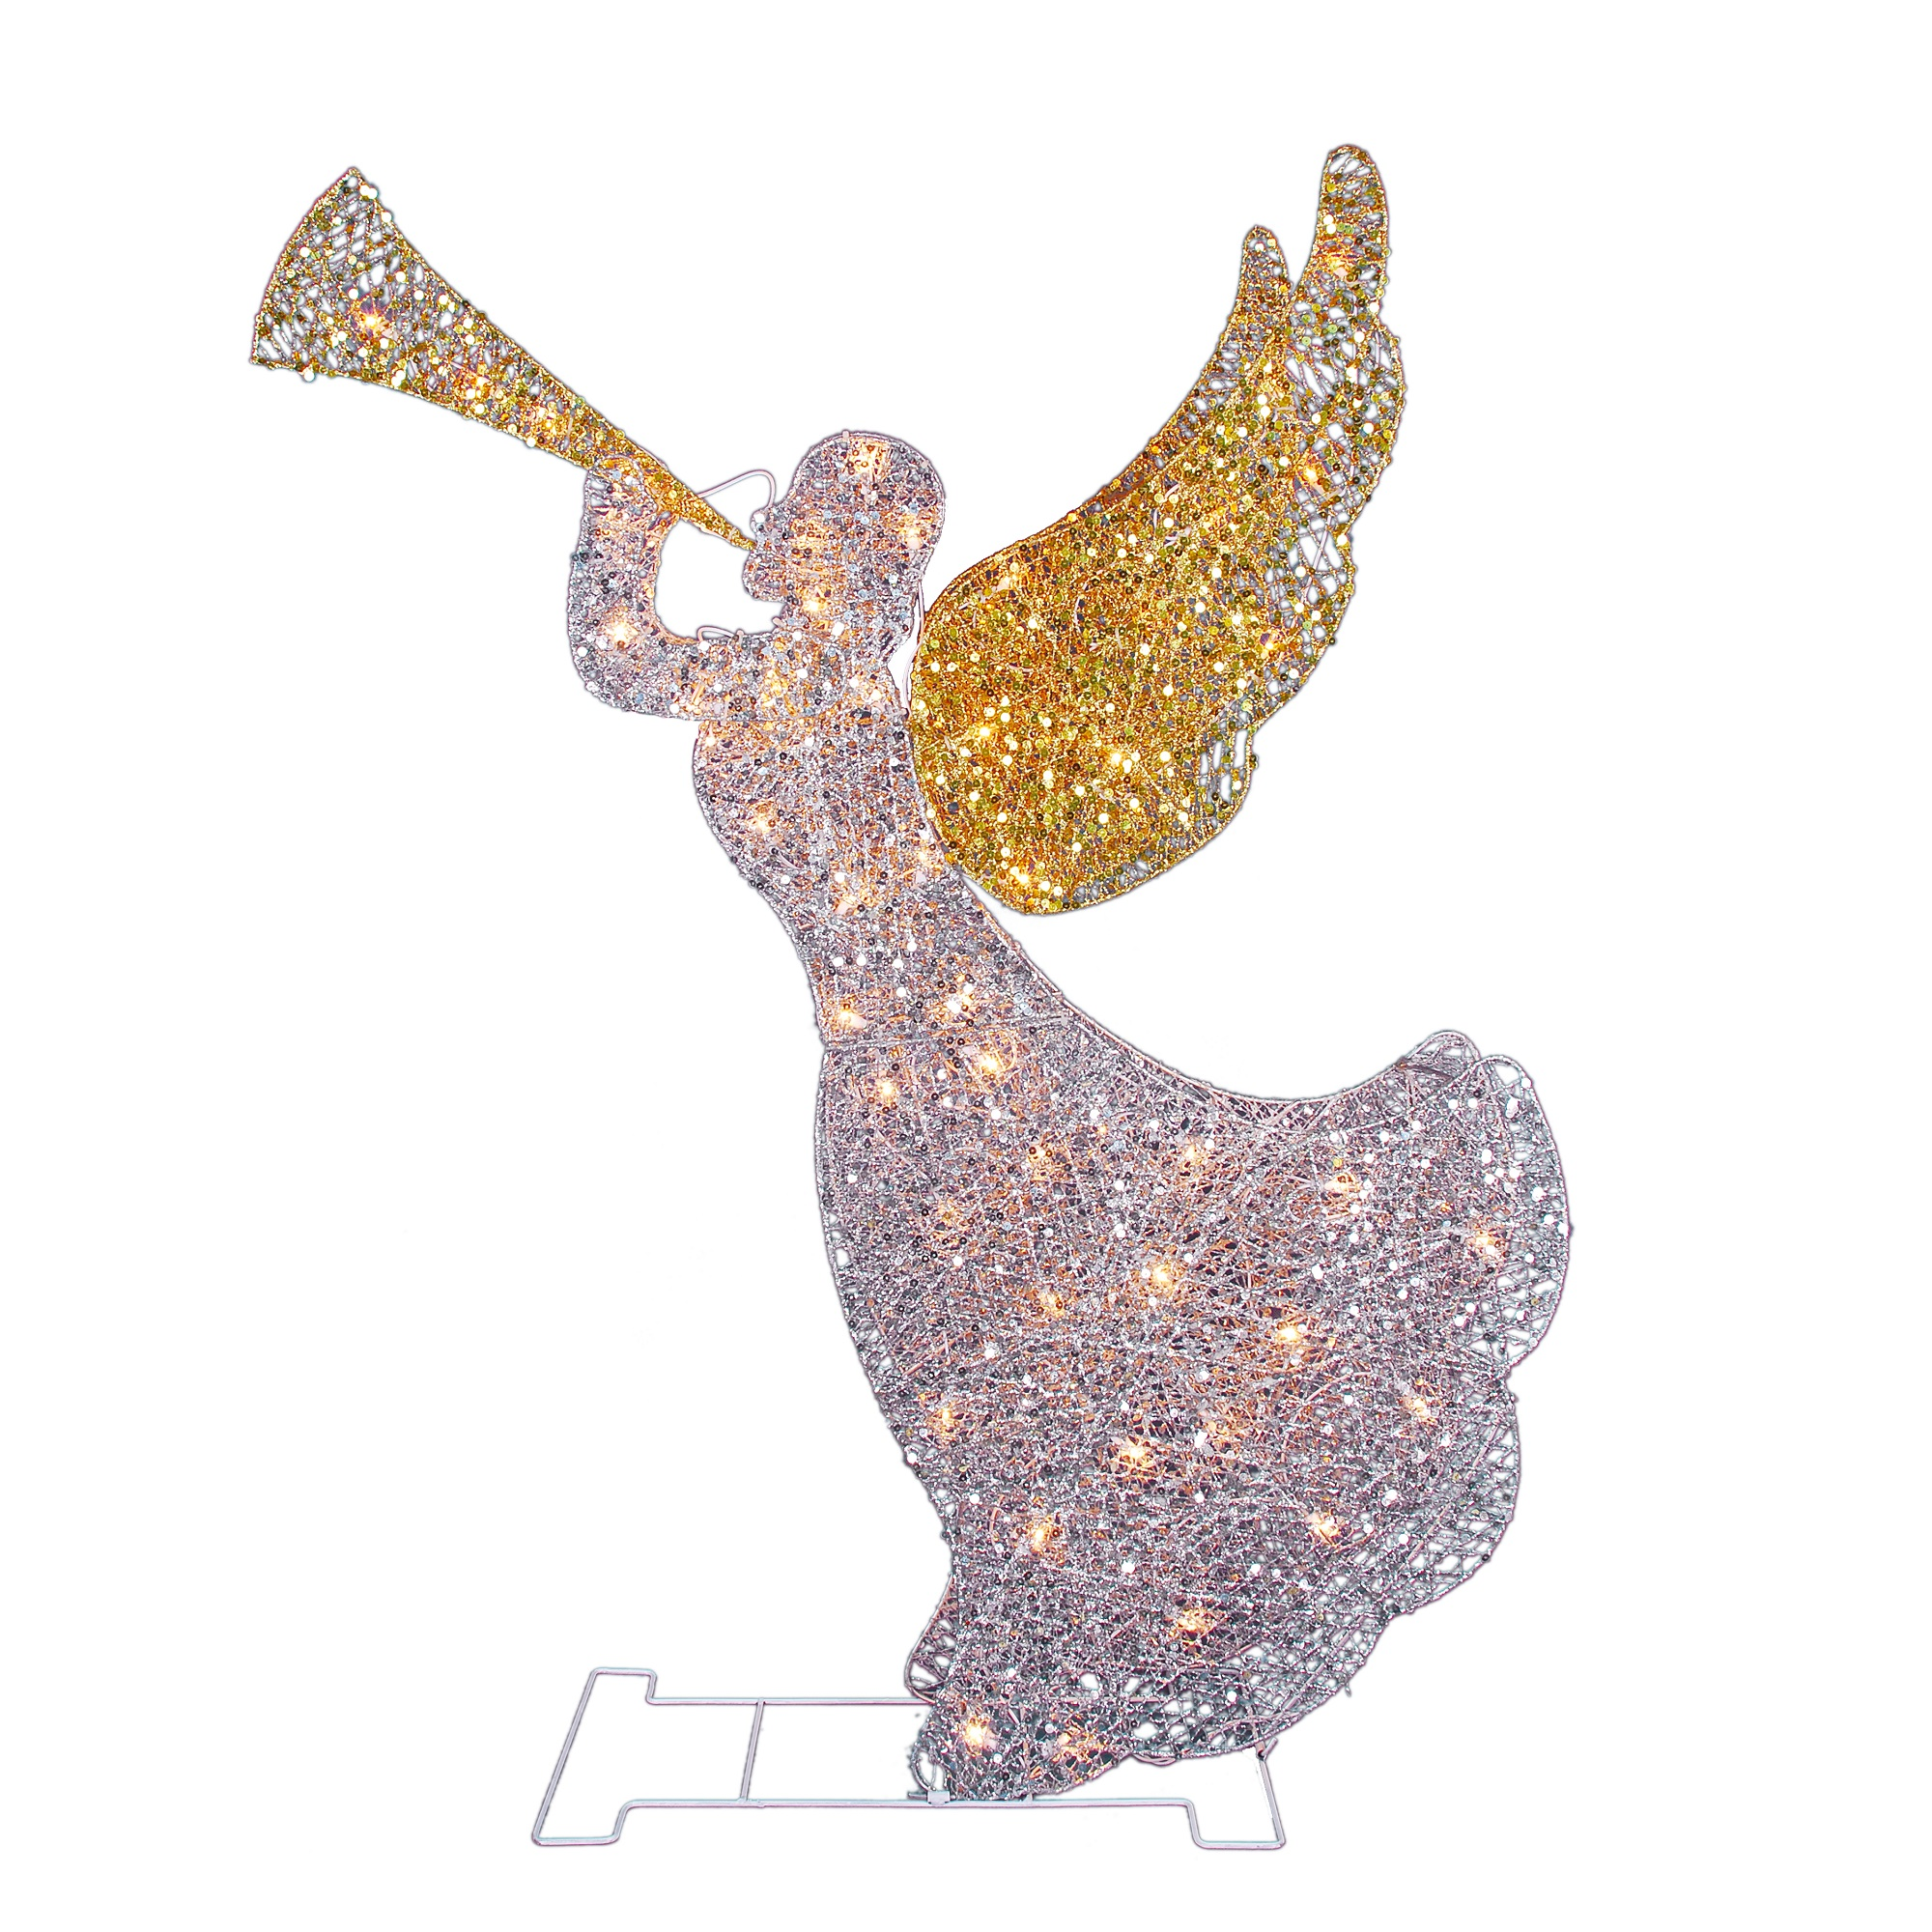 "46"" Lighted Glitter Sequin 3-D Angel with Trumpet Christmas Outdoor Decoration - Clear Lights"